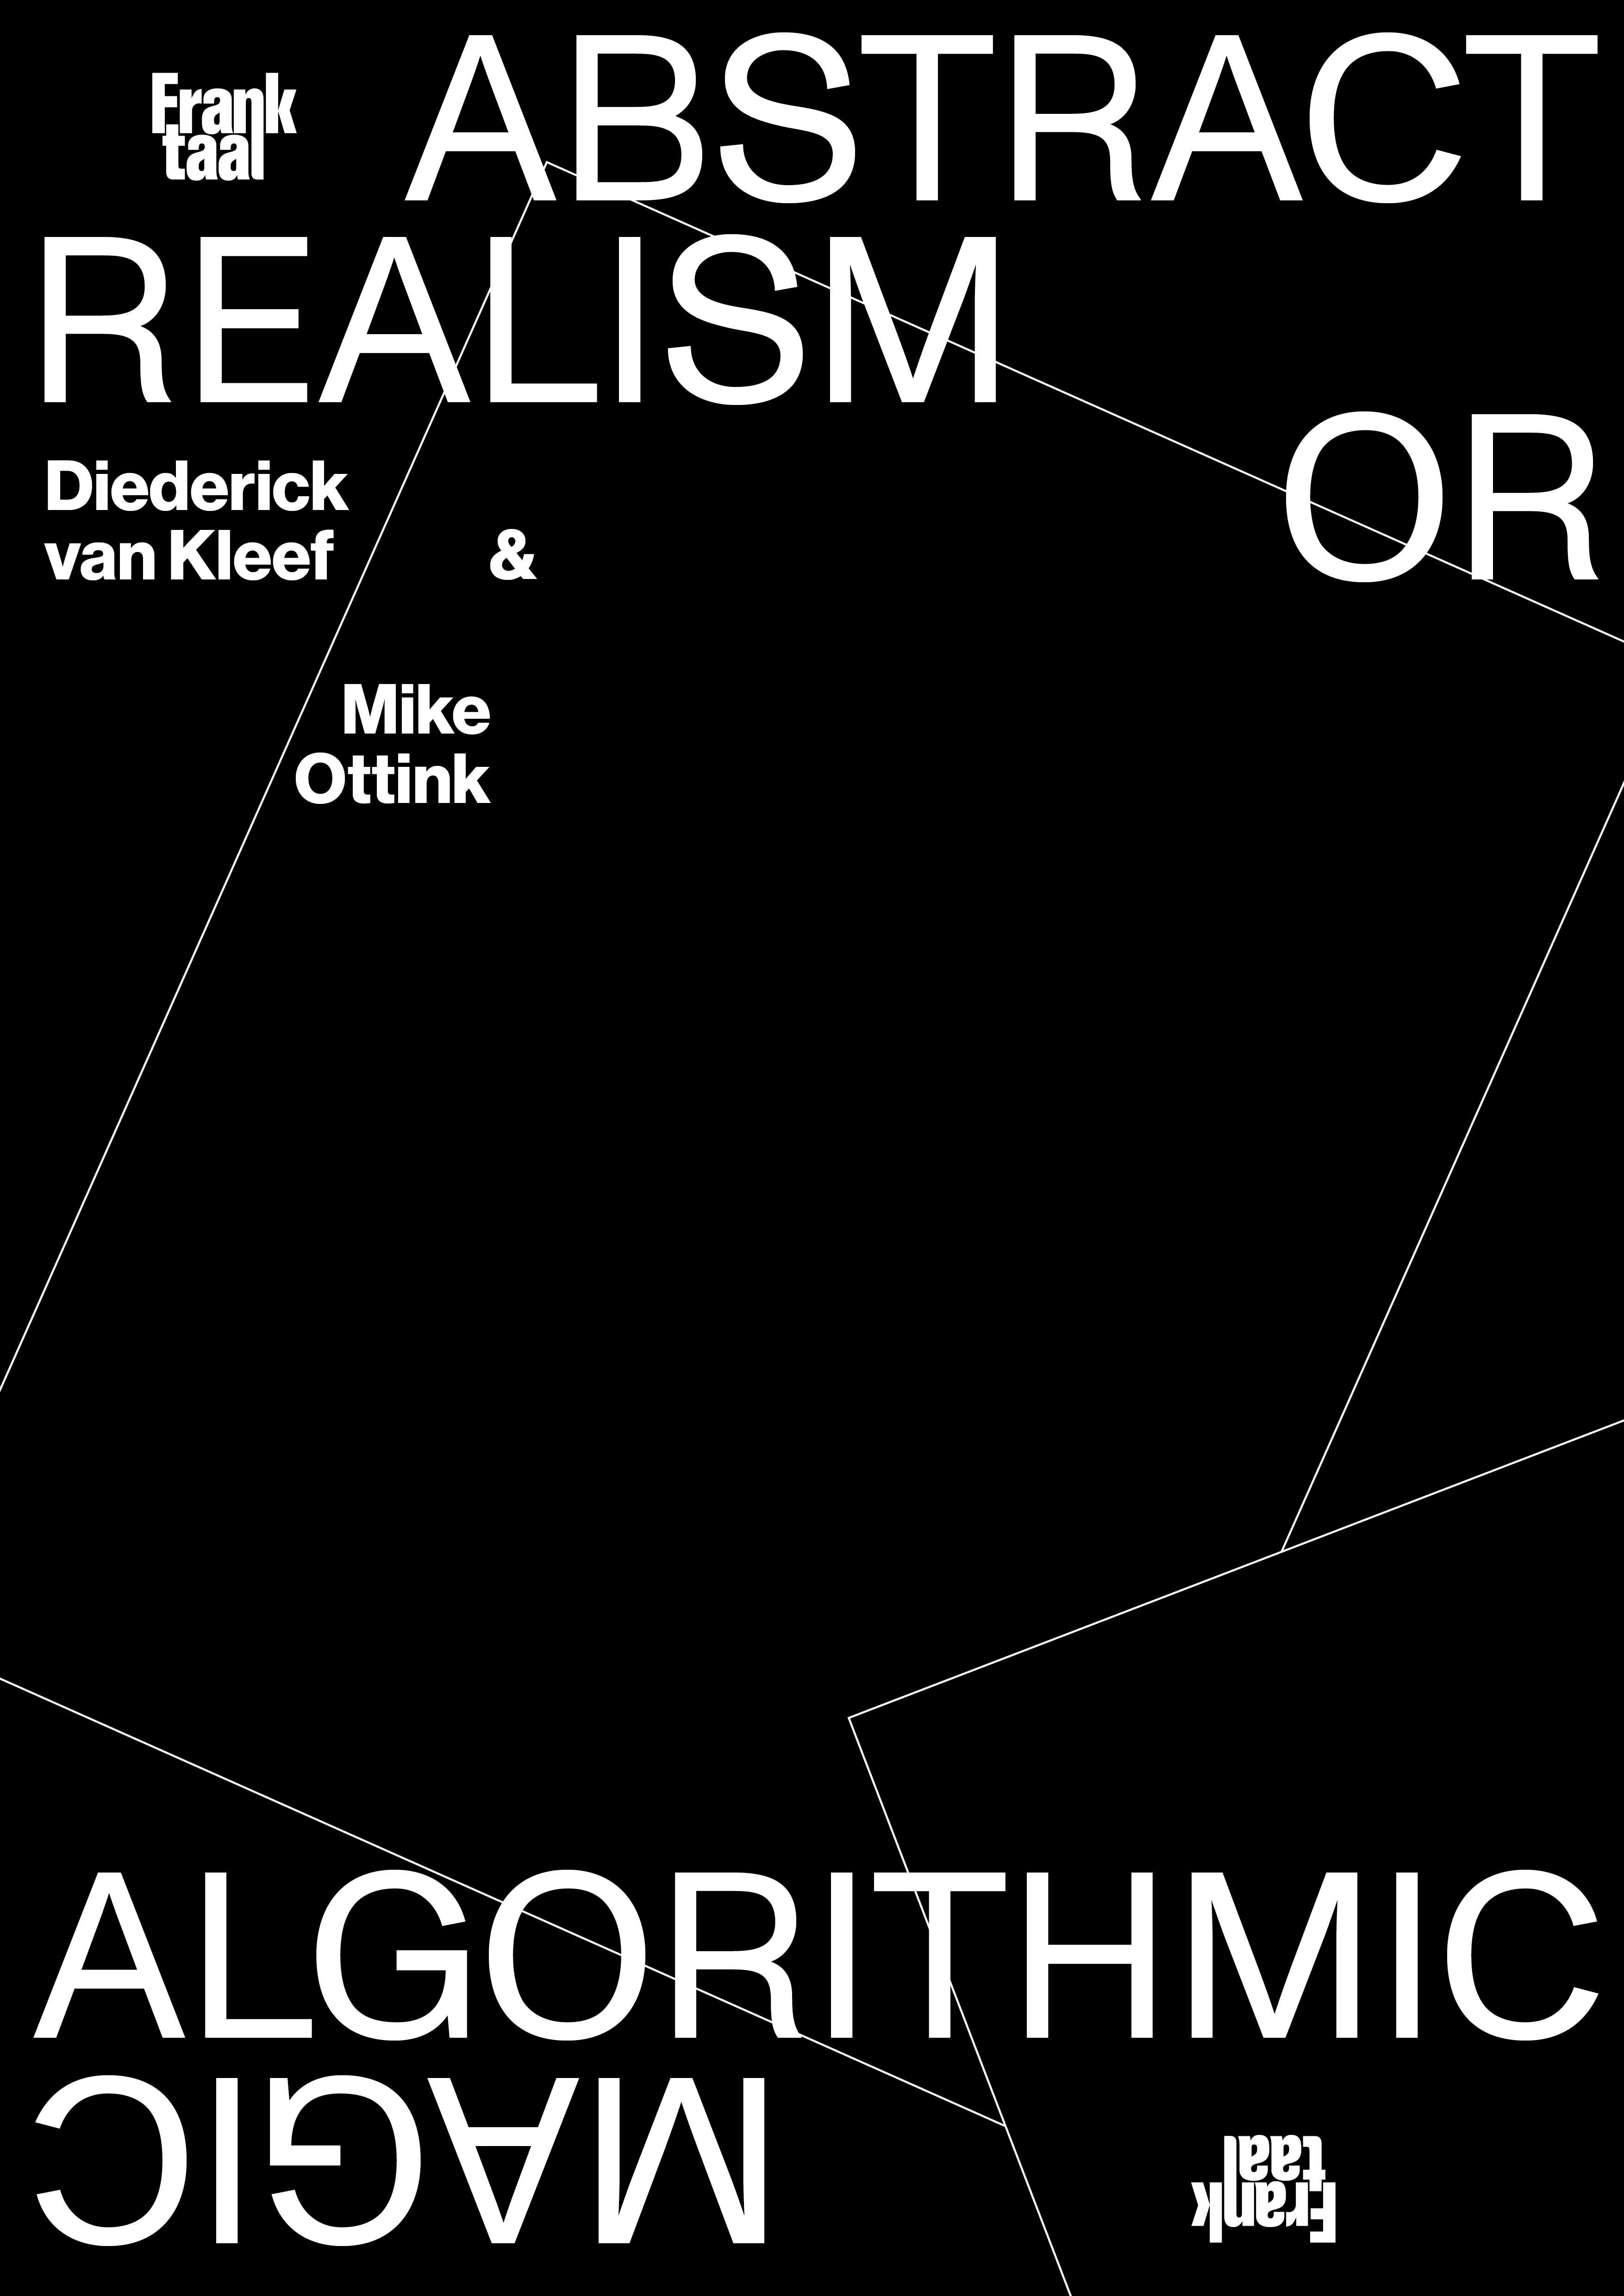 Abstract realism or algorithmic magic, featuring Mike Ottink and Diedrick van Kleef